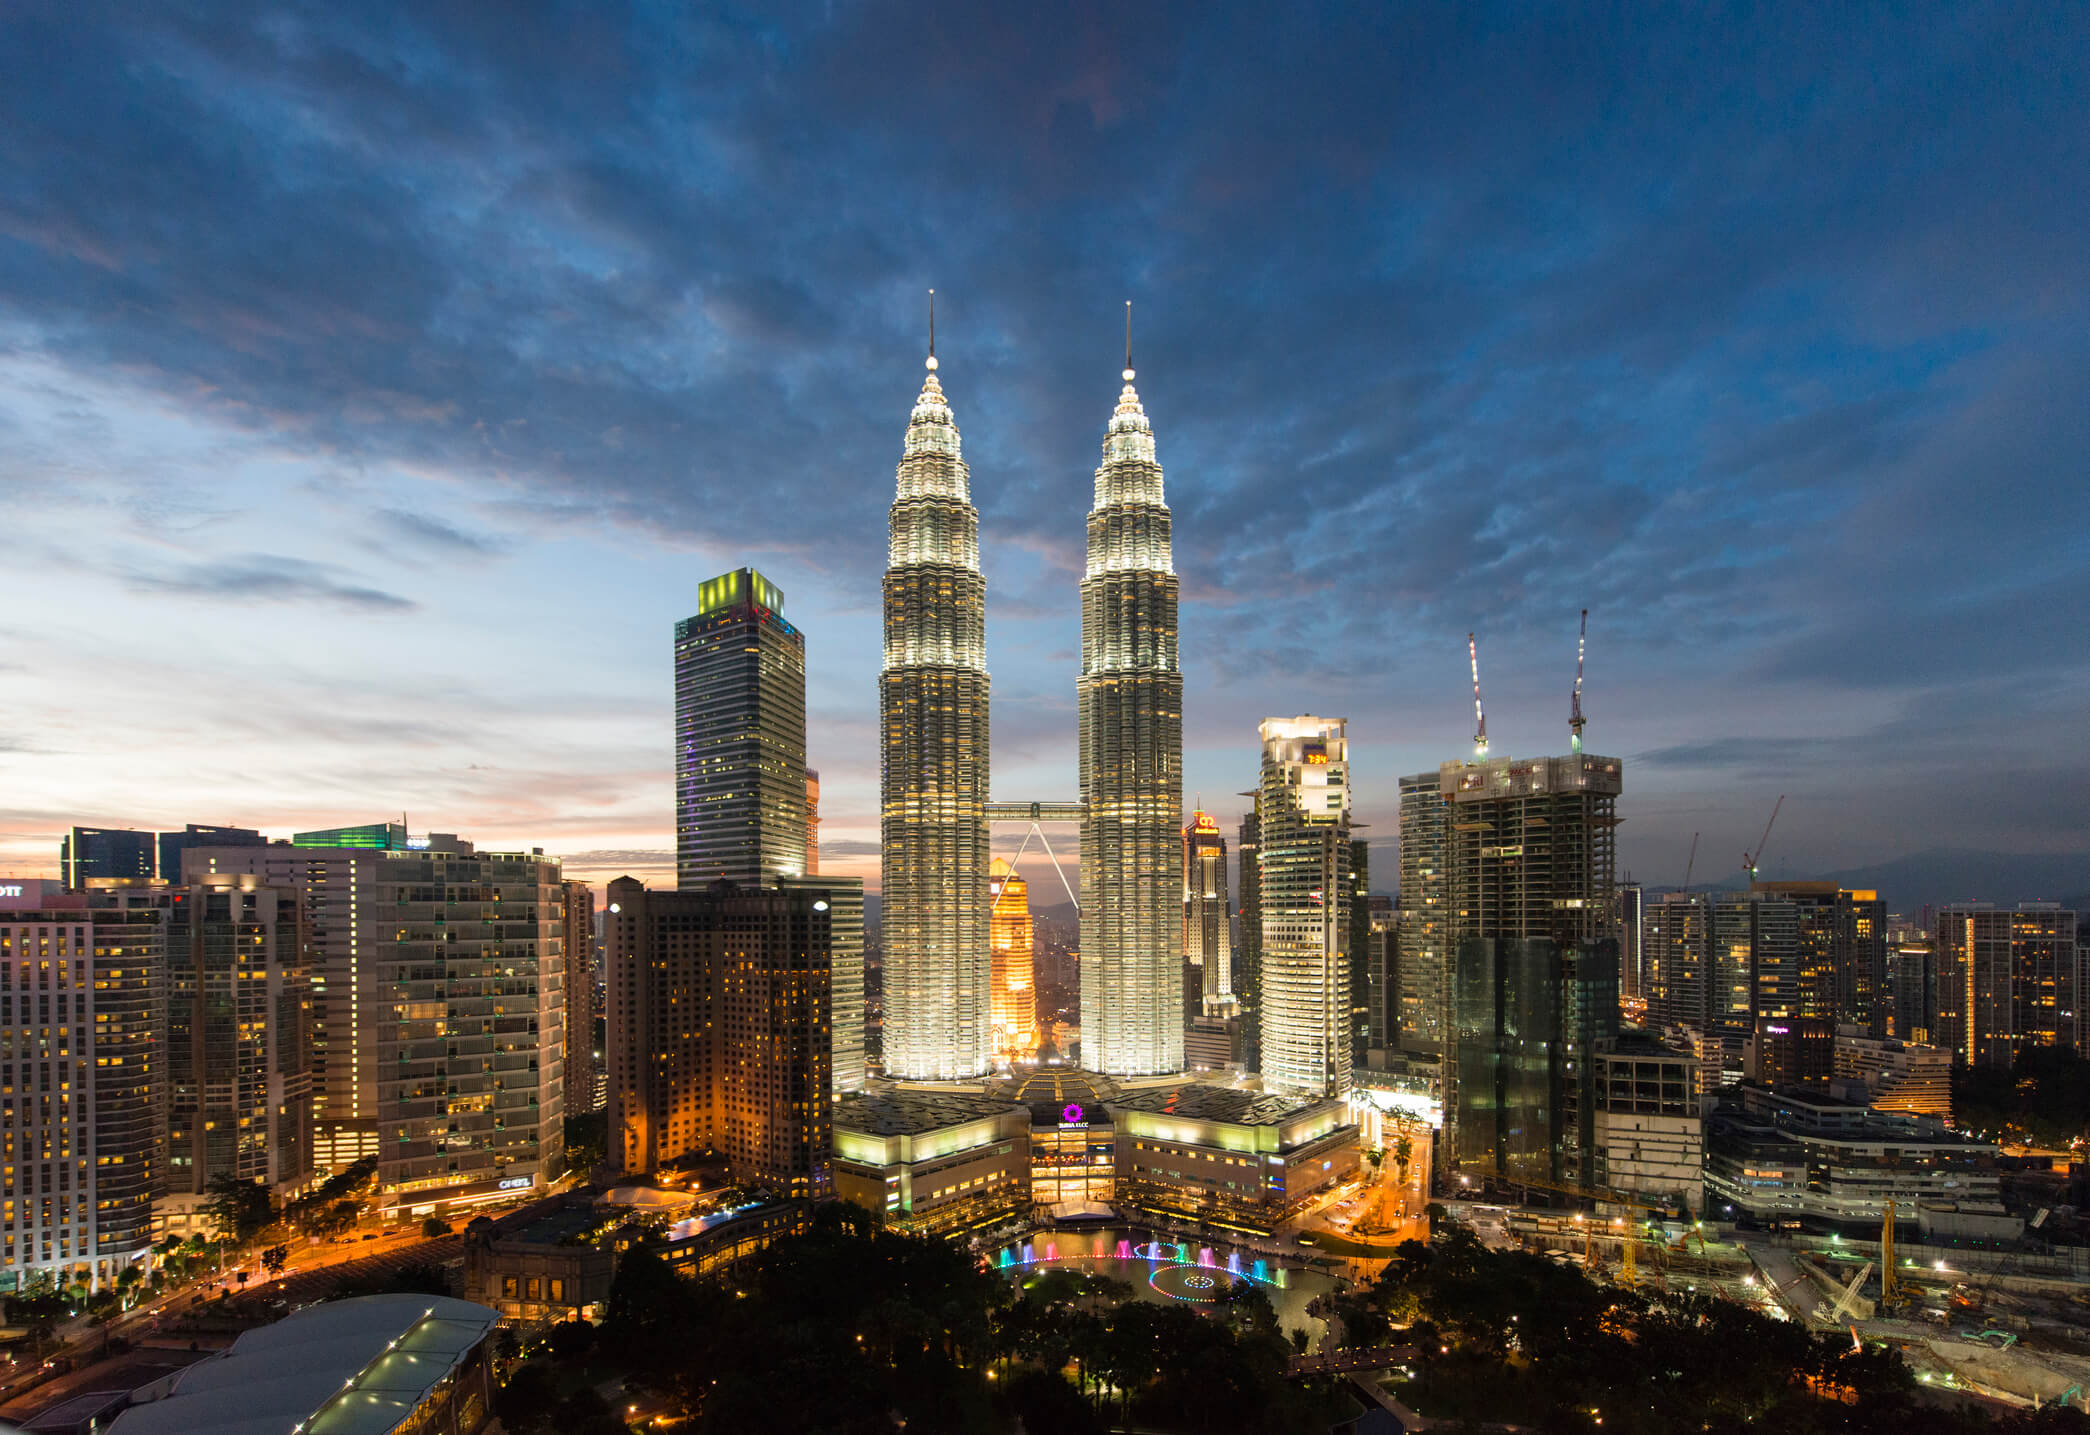 Petronas twin towers lit up at dusk - things to do in Kuala Lumpur